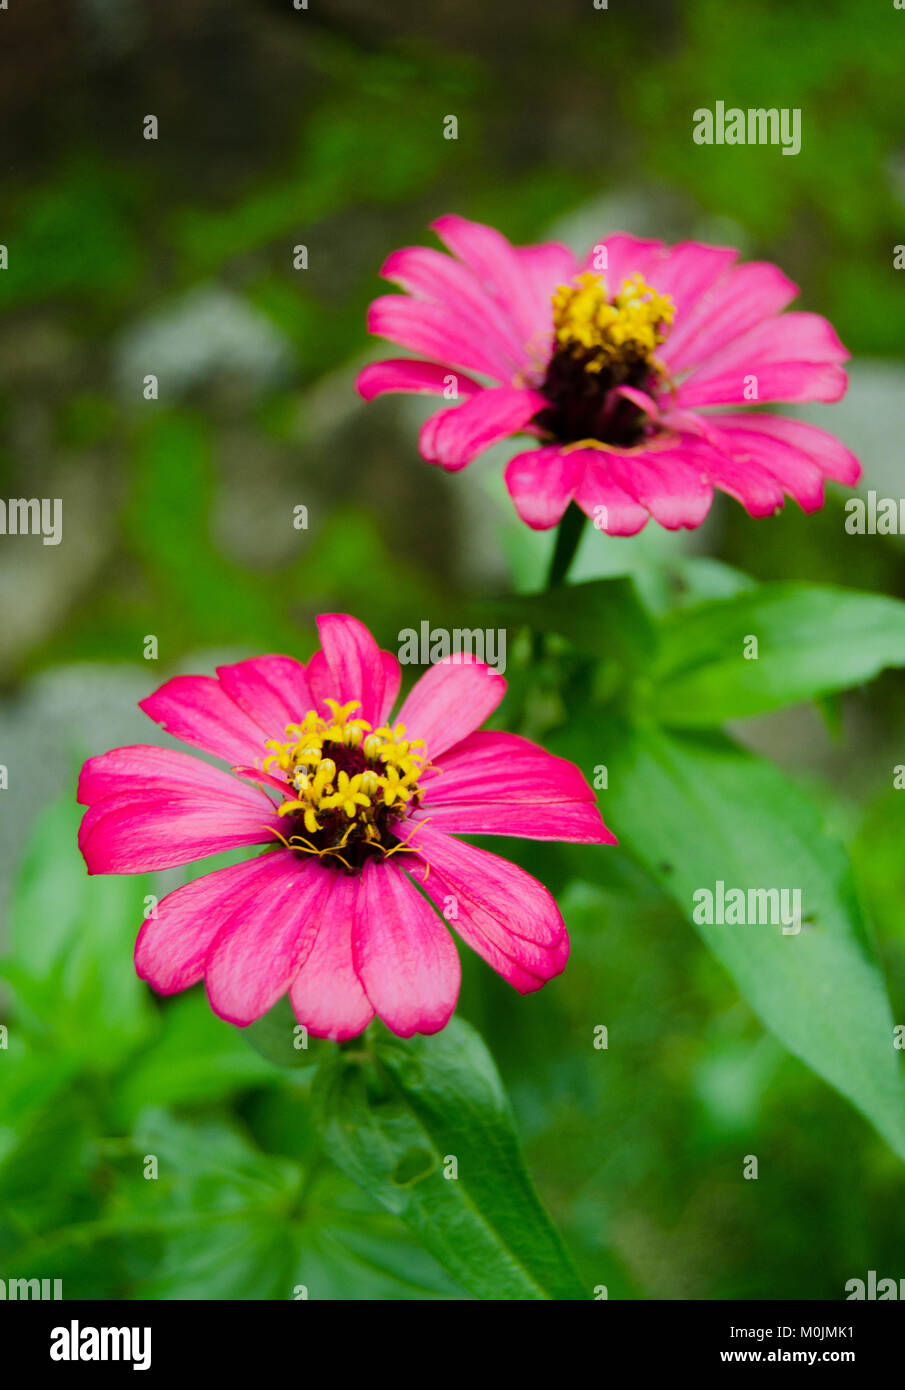 Pink summer flower - Stock Image